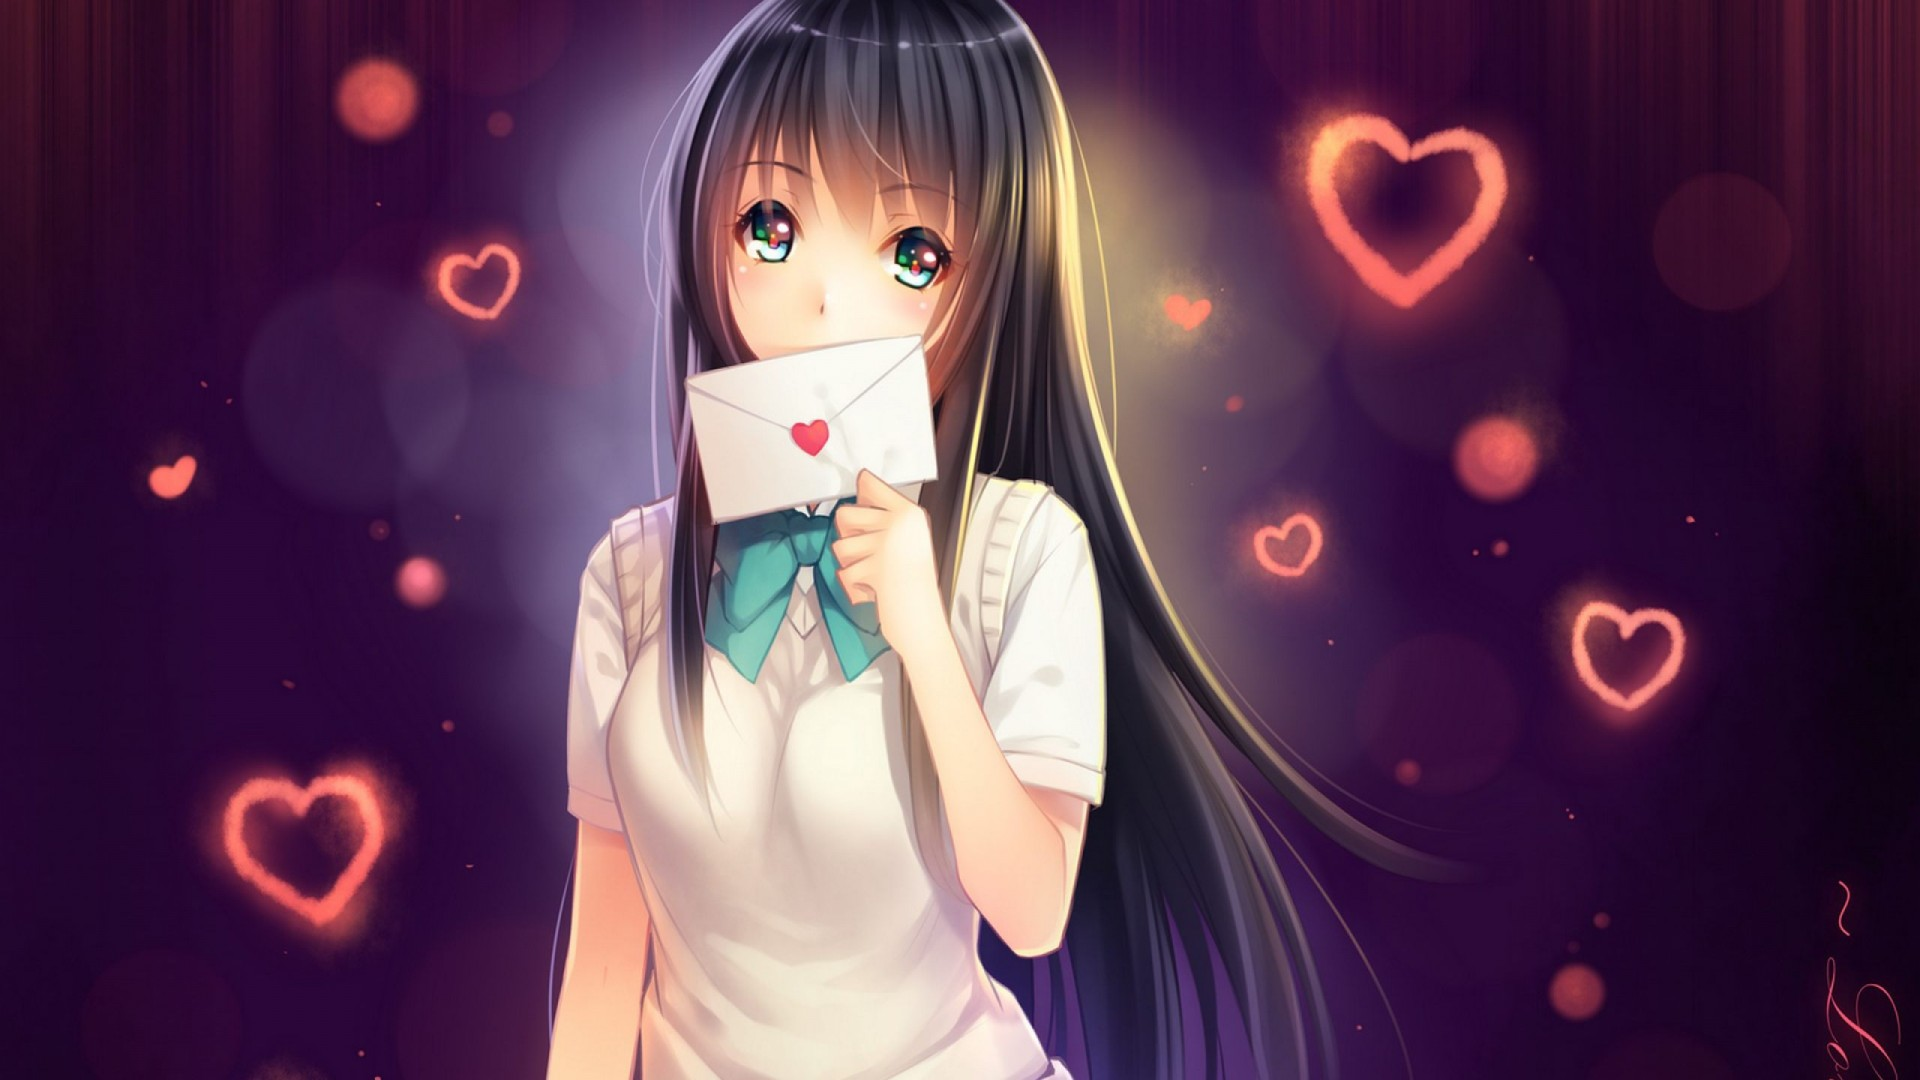 anime-girl-carta-de-amor-hd-1920x1080-wallpaper-wpc5802183